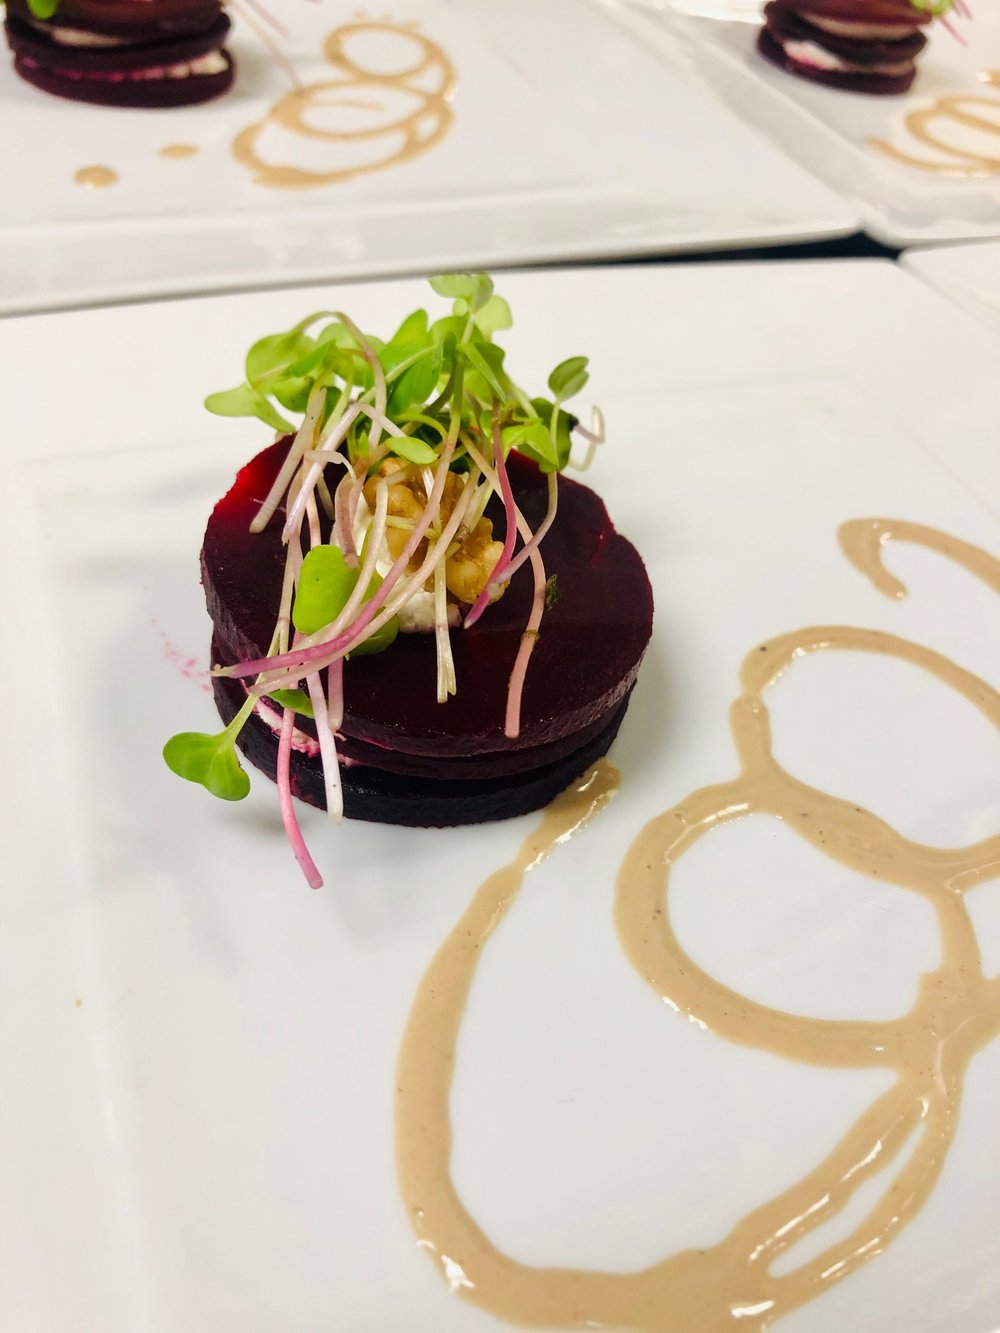 First Course: Beet and Goat Cheese Napoleon, Hazelnut Vinaigrette